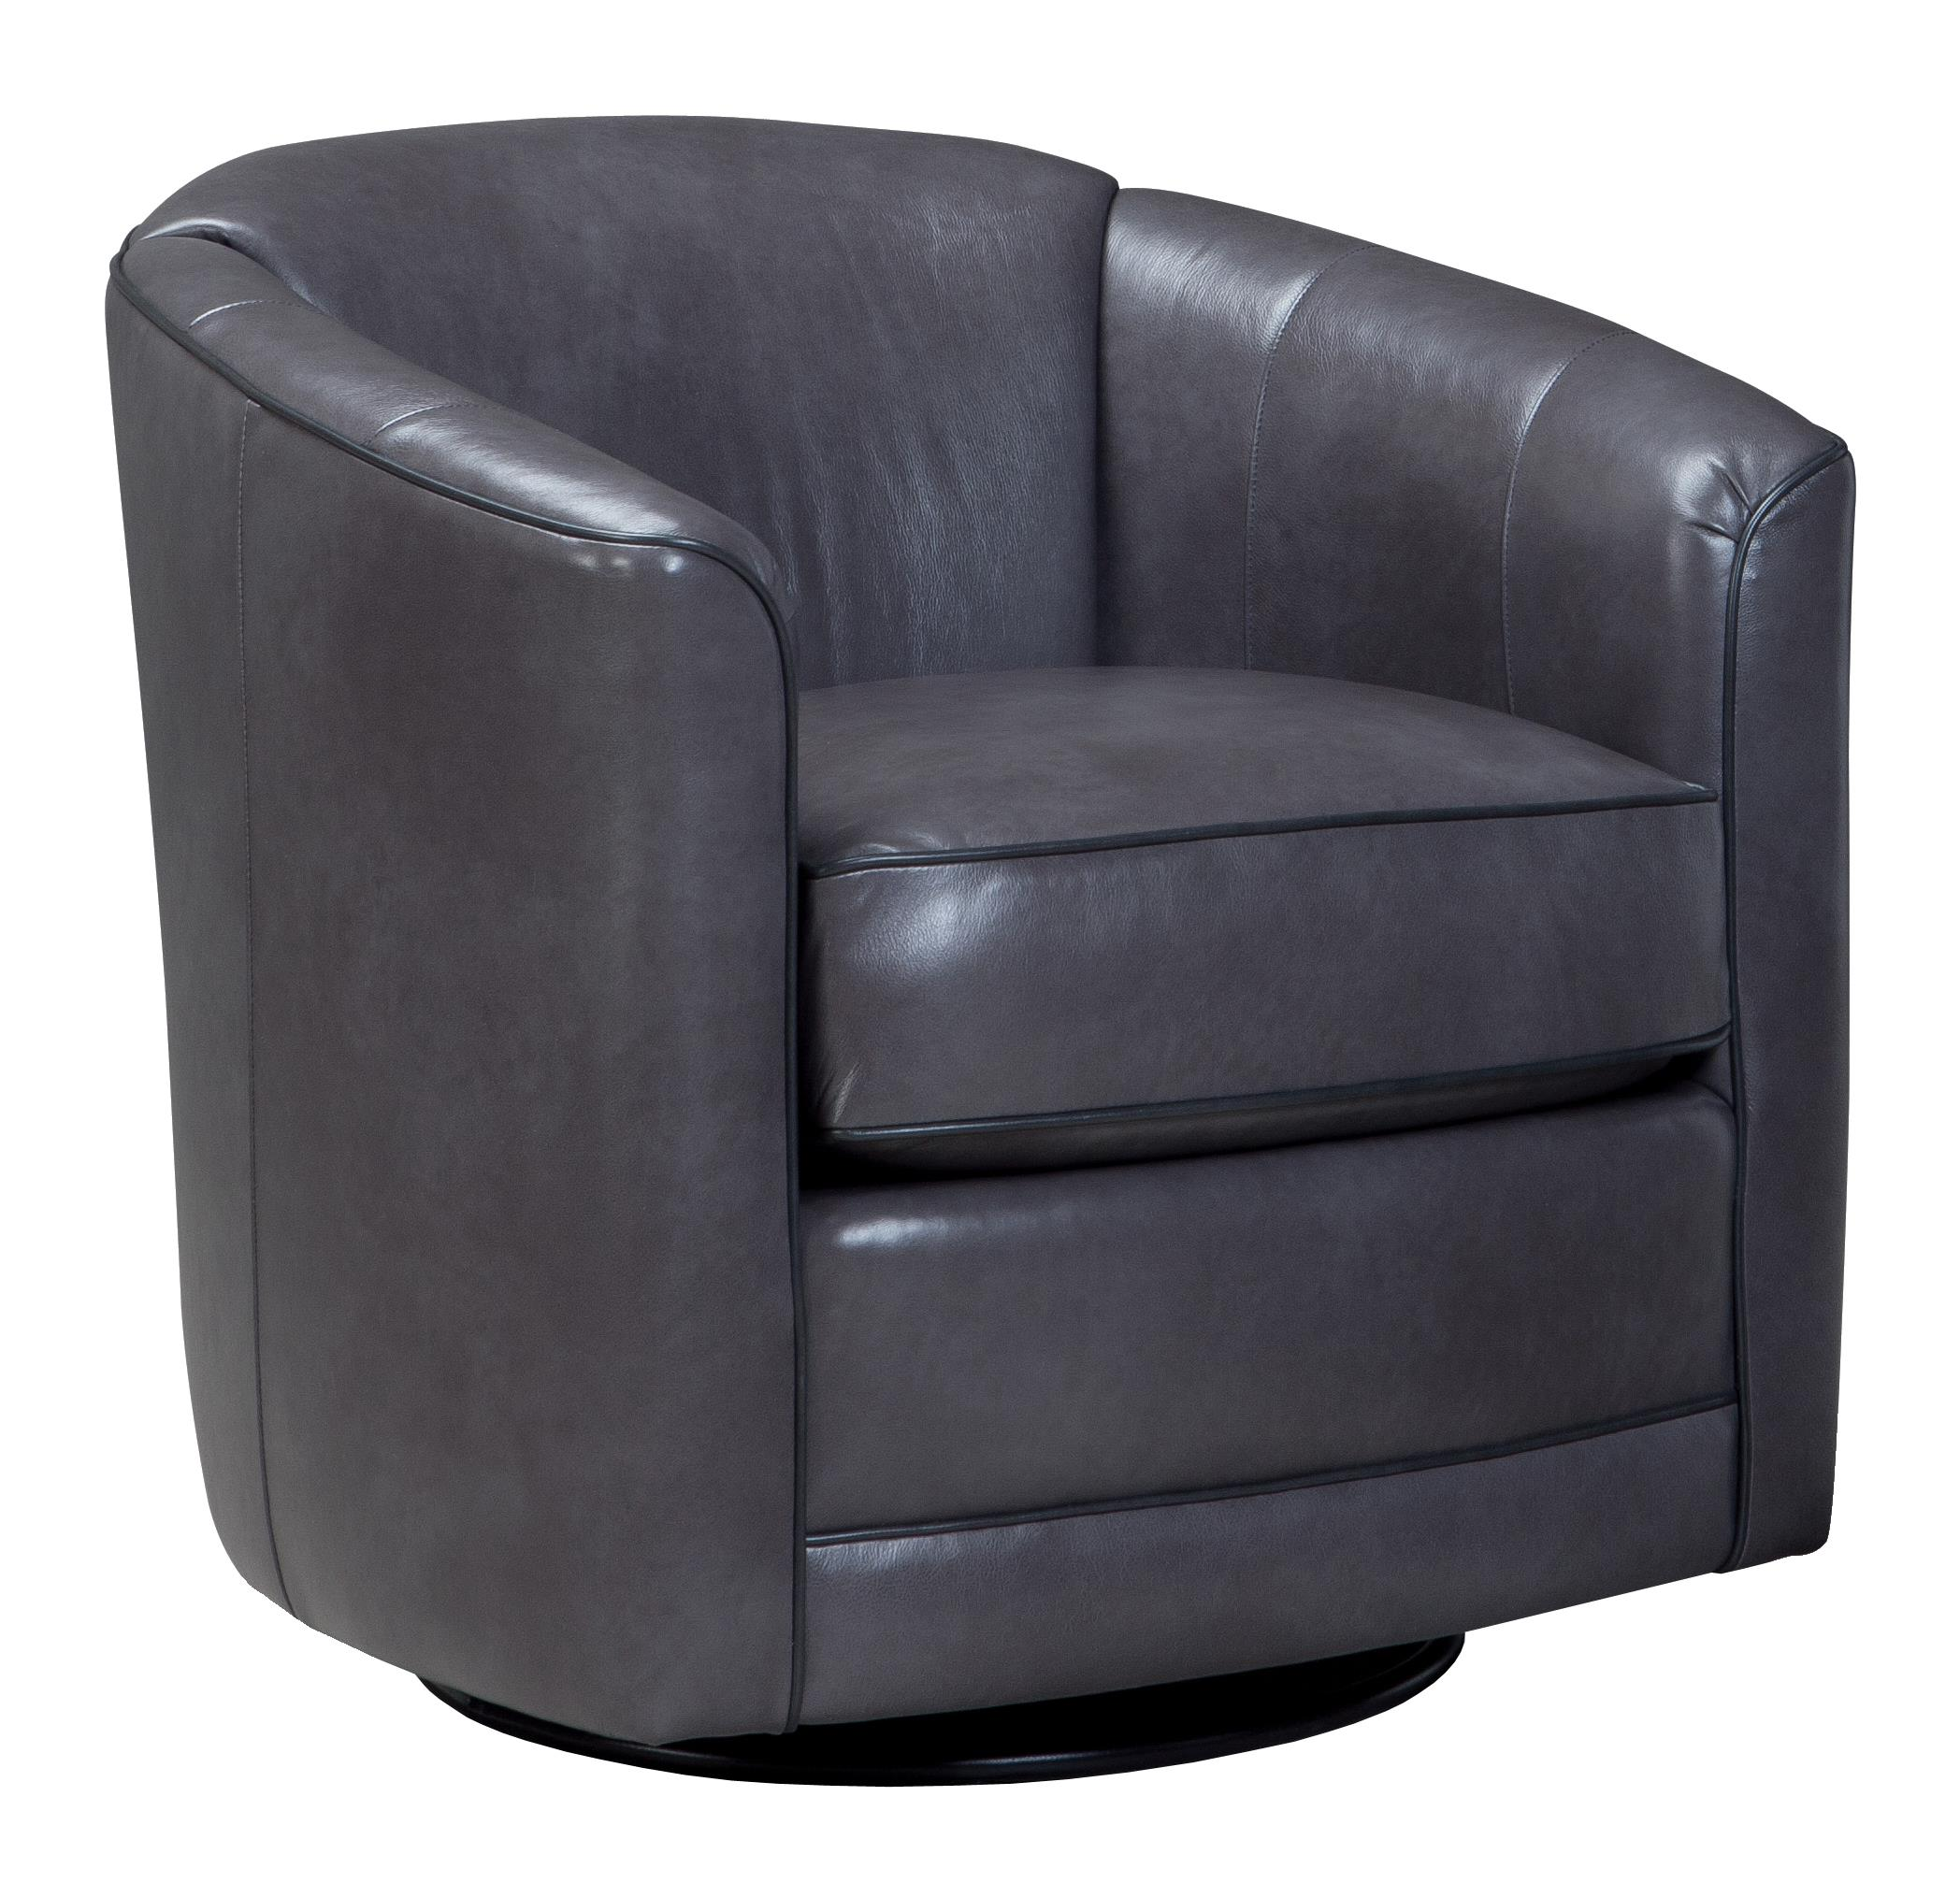 Swivel Glider Chairs Swivel Glider Chair With Barrel Back By Smith Brothers